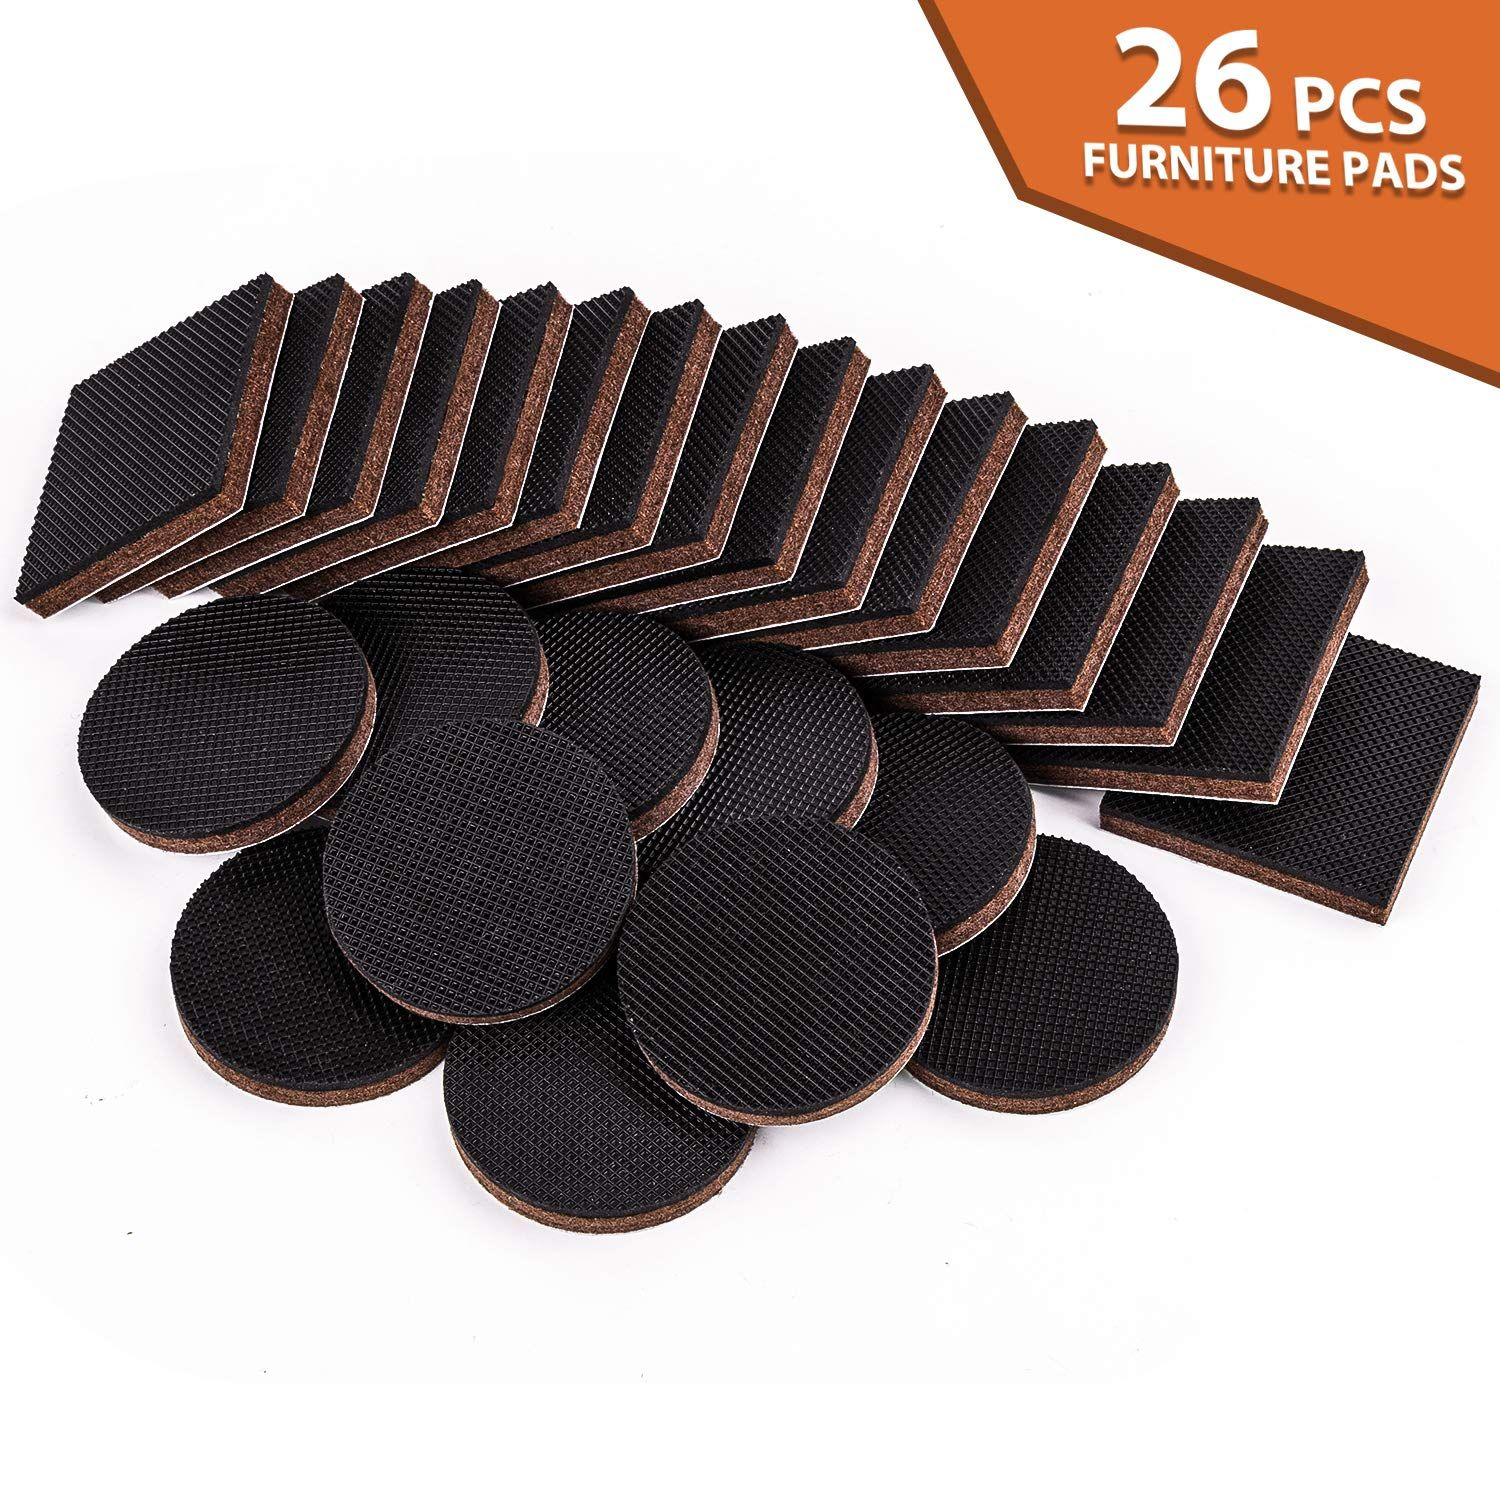 Non Slip Furniture Pads 26pcs Rubber Furniture Grippers Self